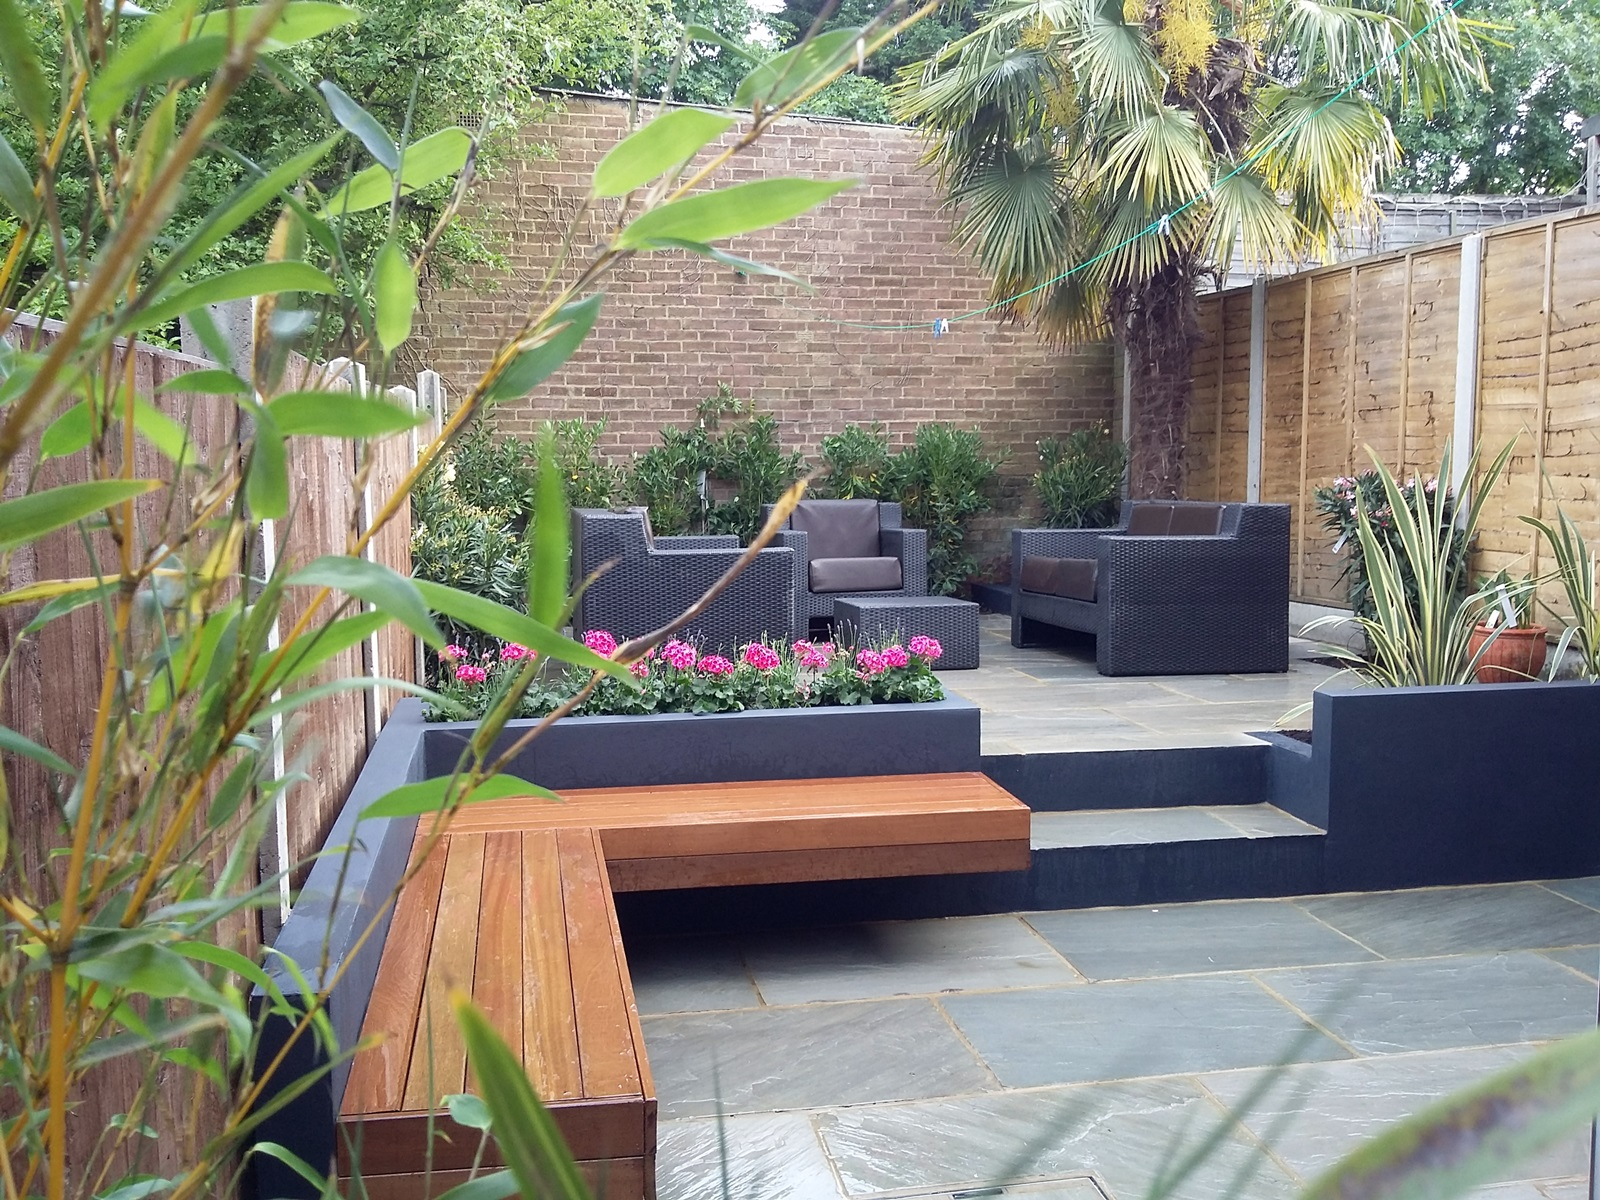 modern garden design london natural sandstone paving patio design hardwood floating bench grey blcok render brick raised beds architectural planting balham chelsea fulham battersea clapham